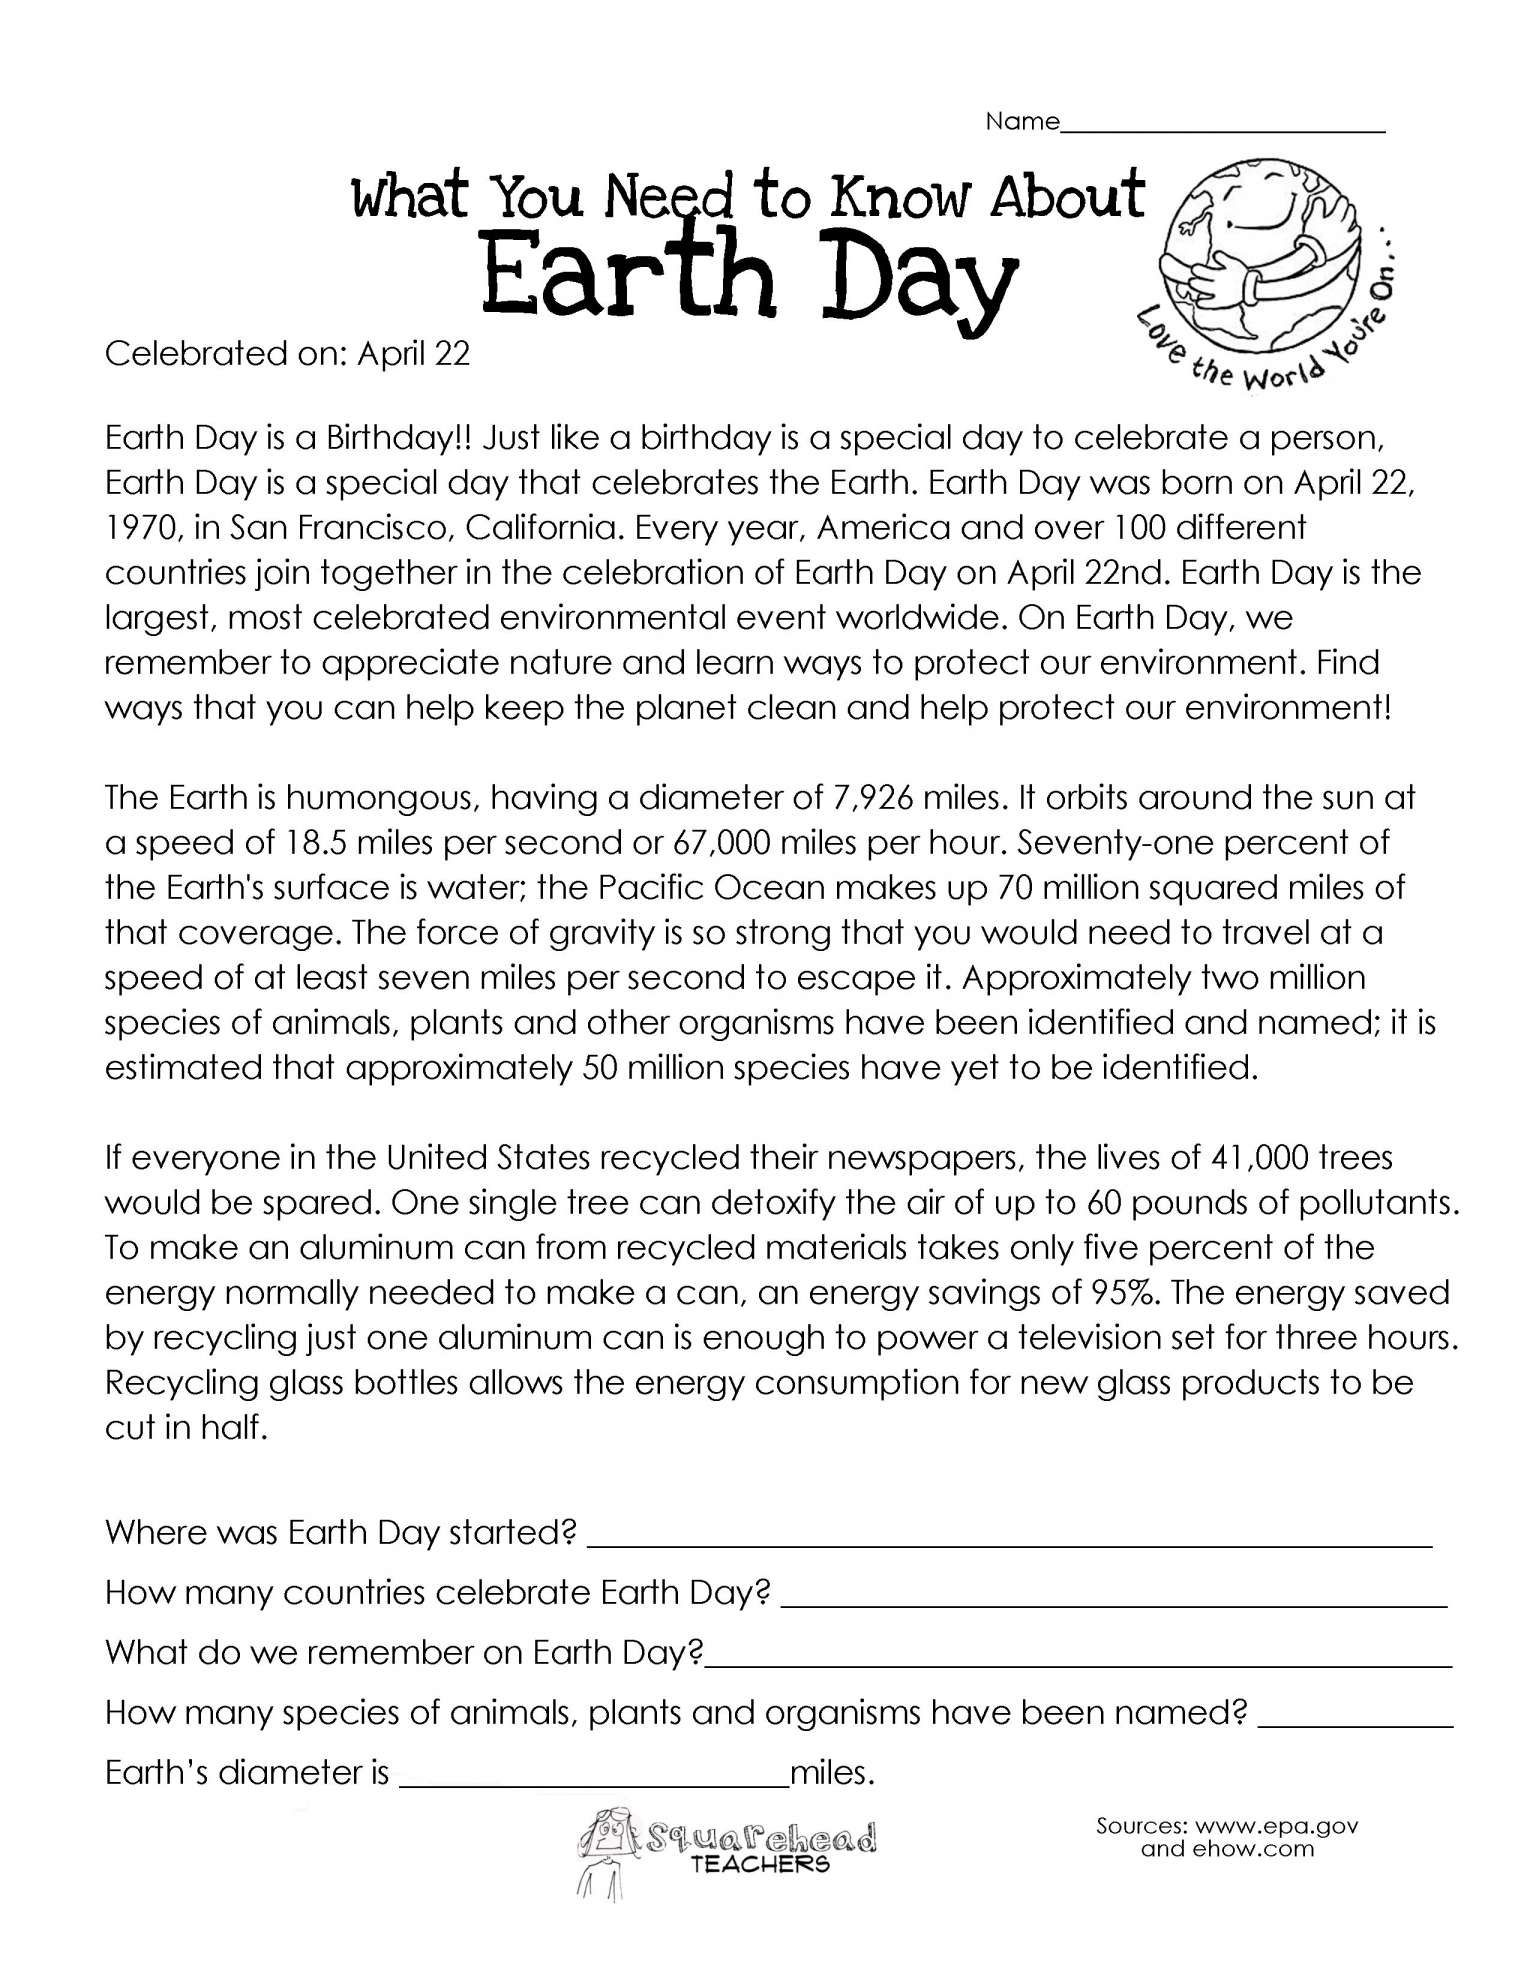 9 Earth Reading Comprehension Worksheetearth Day Reading